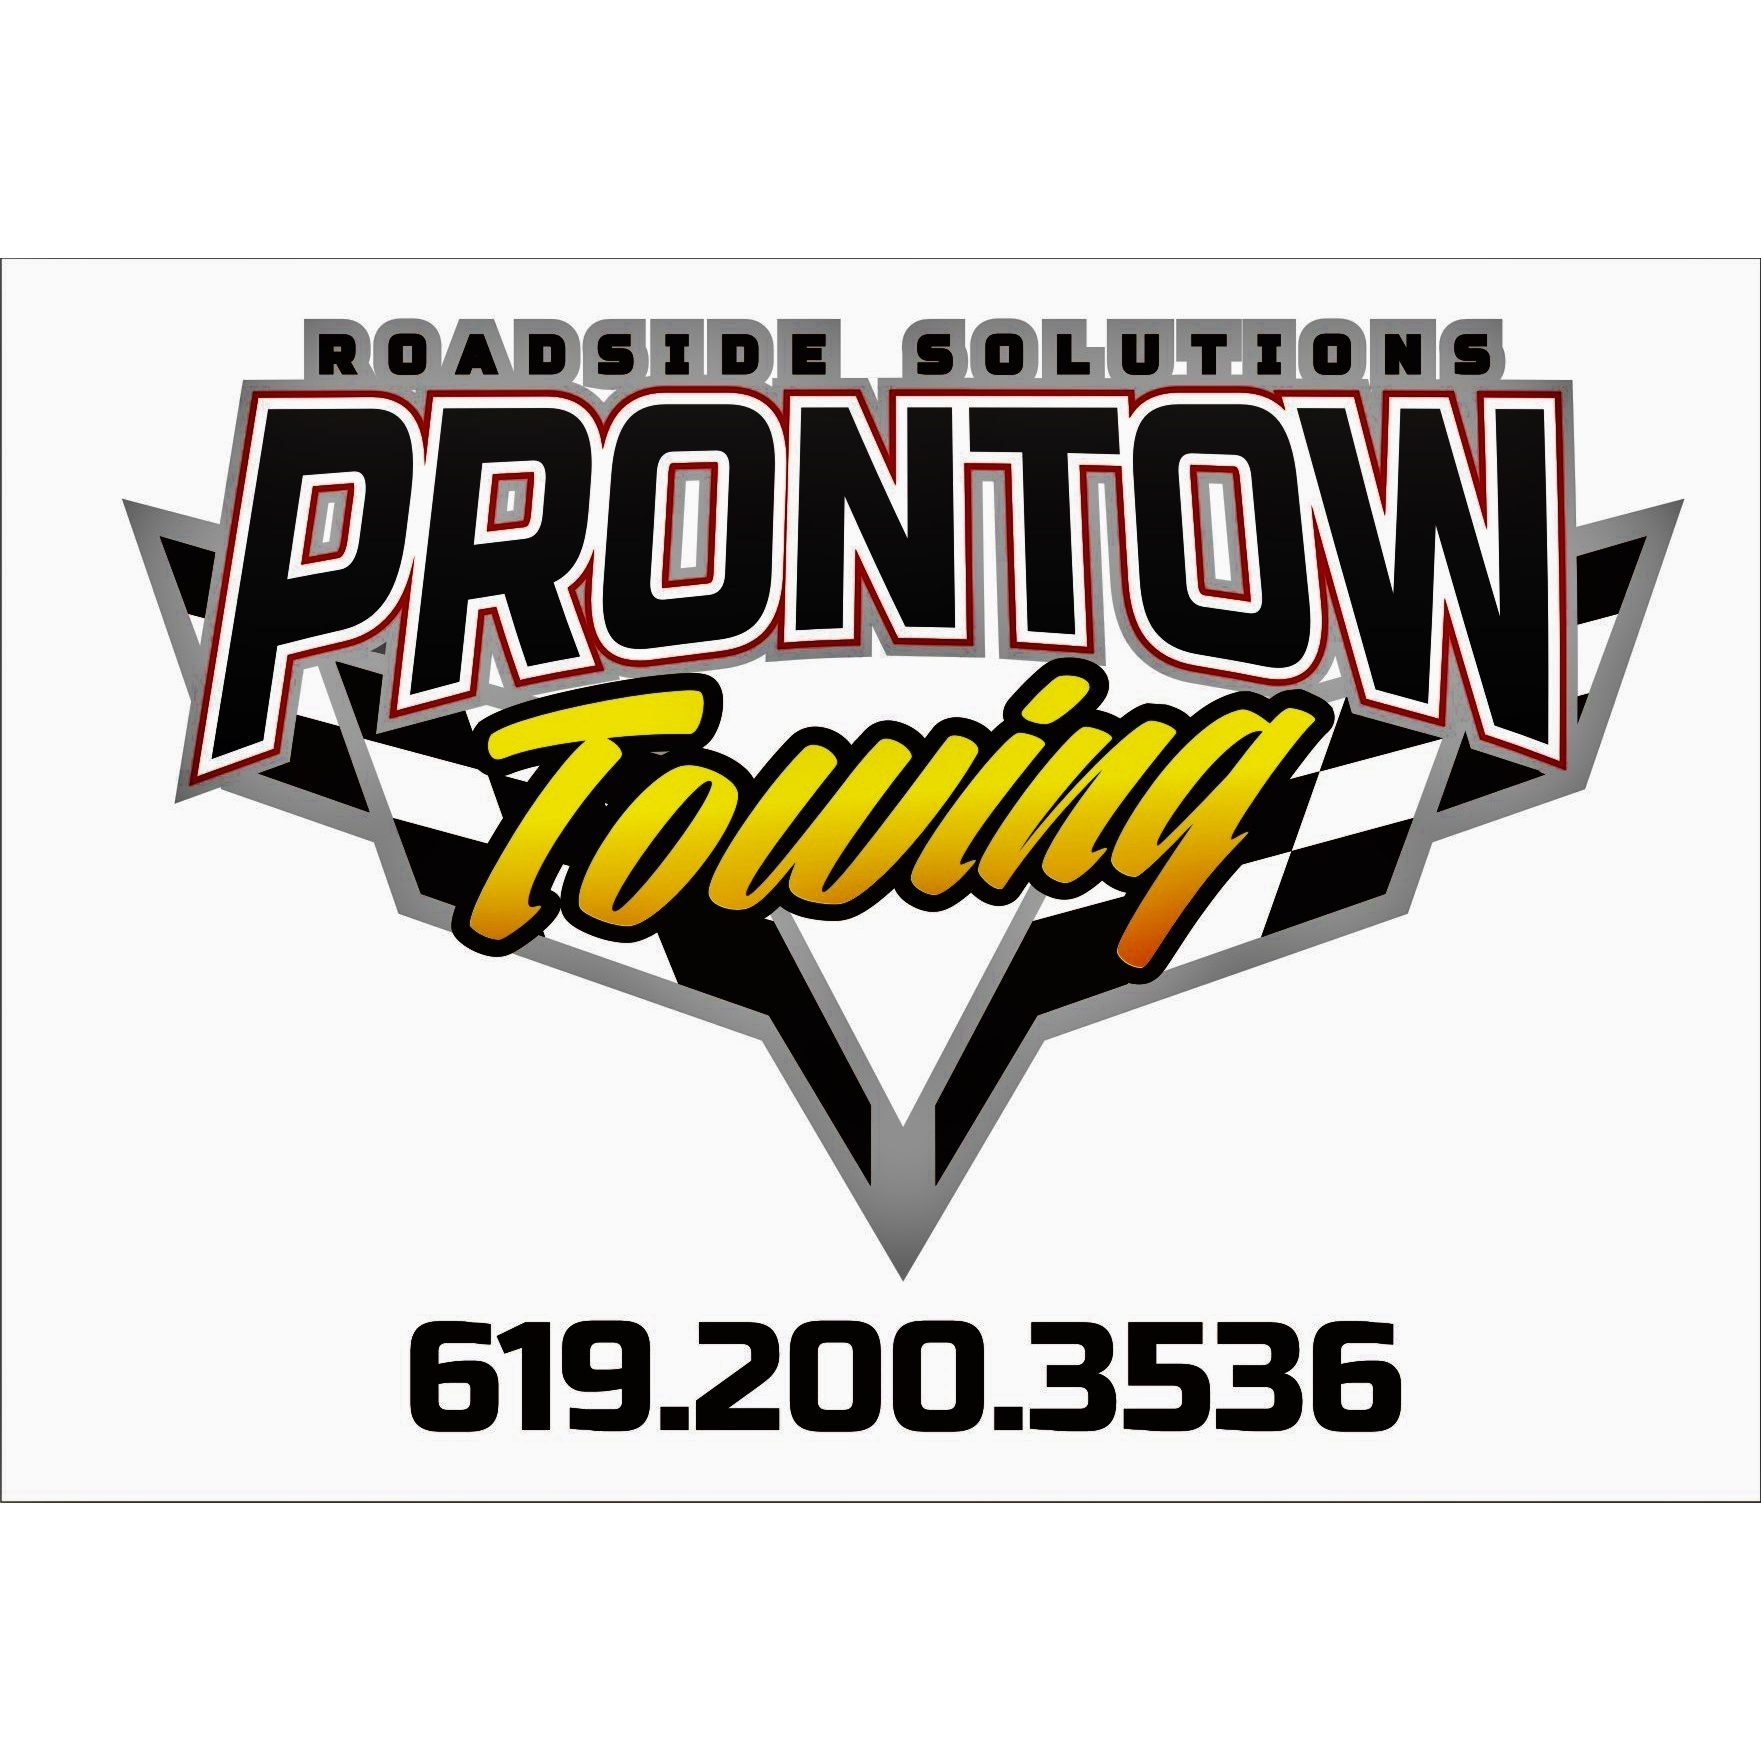 Prontow Towing